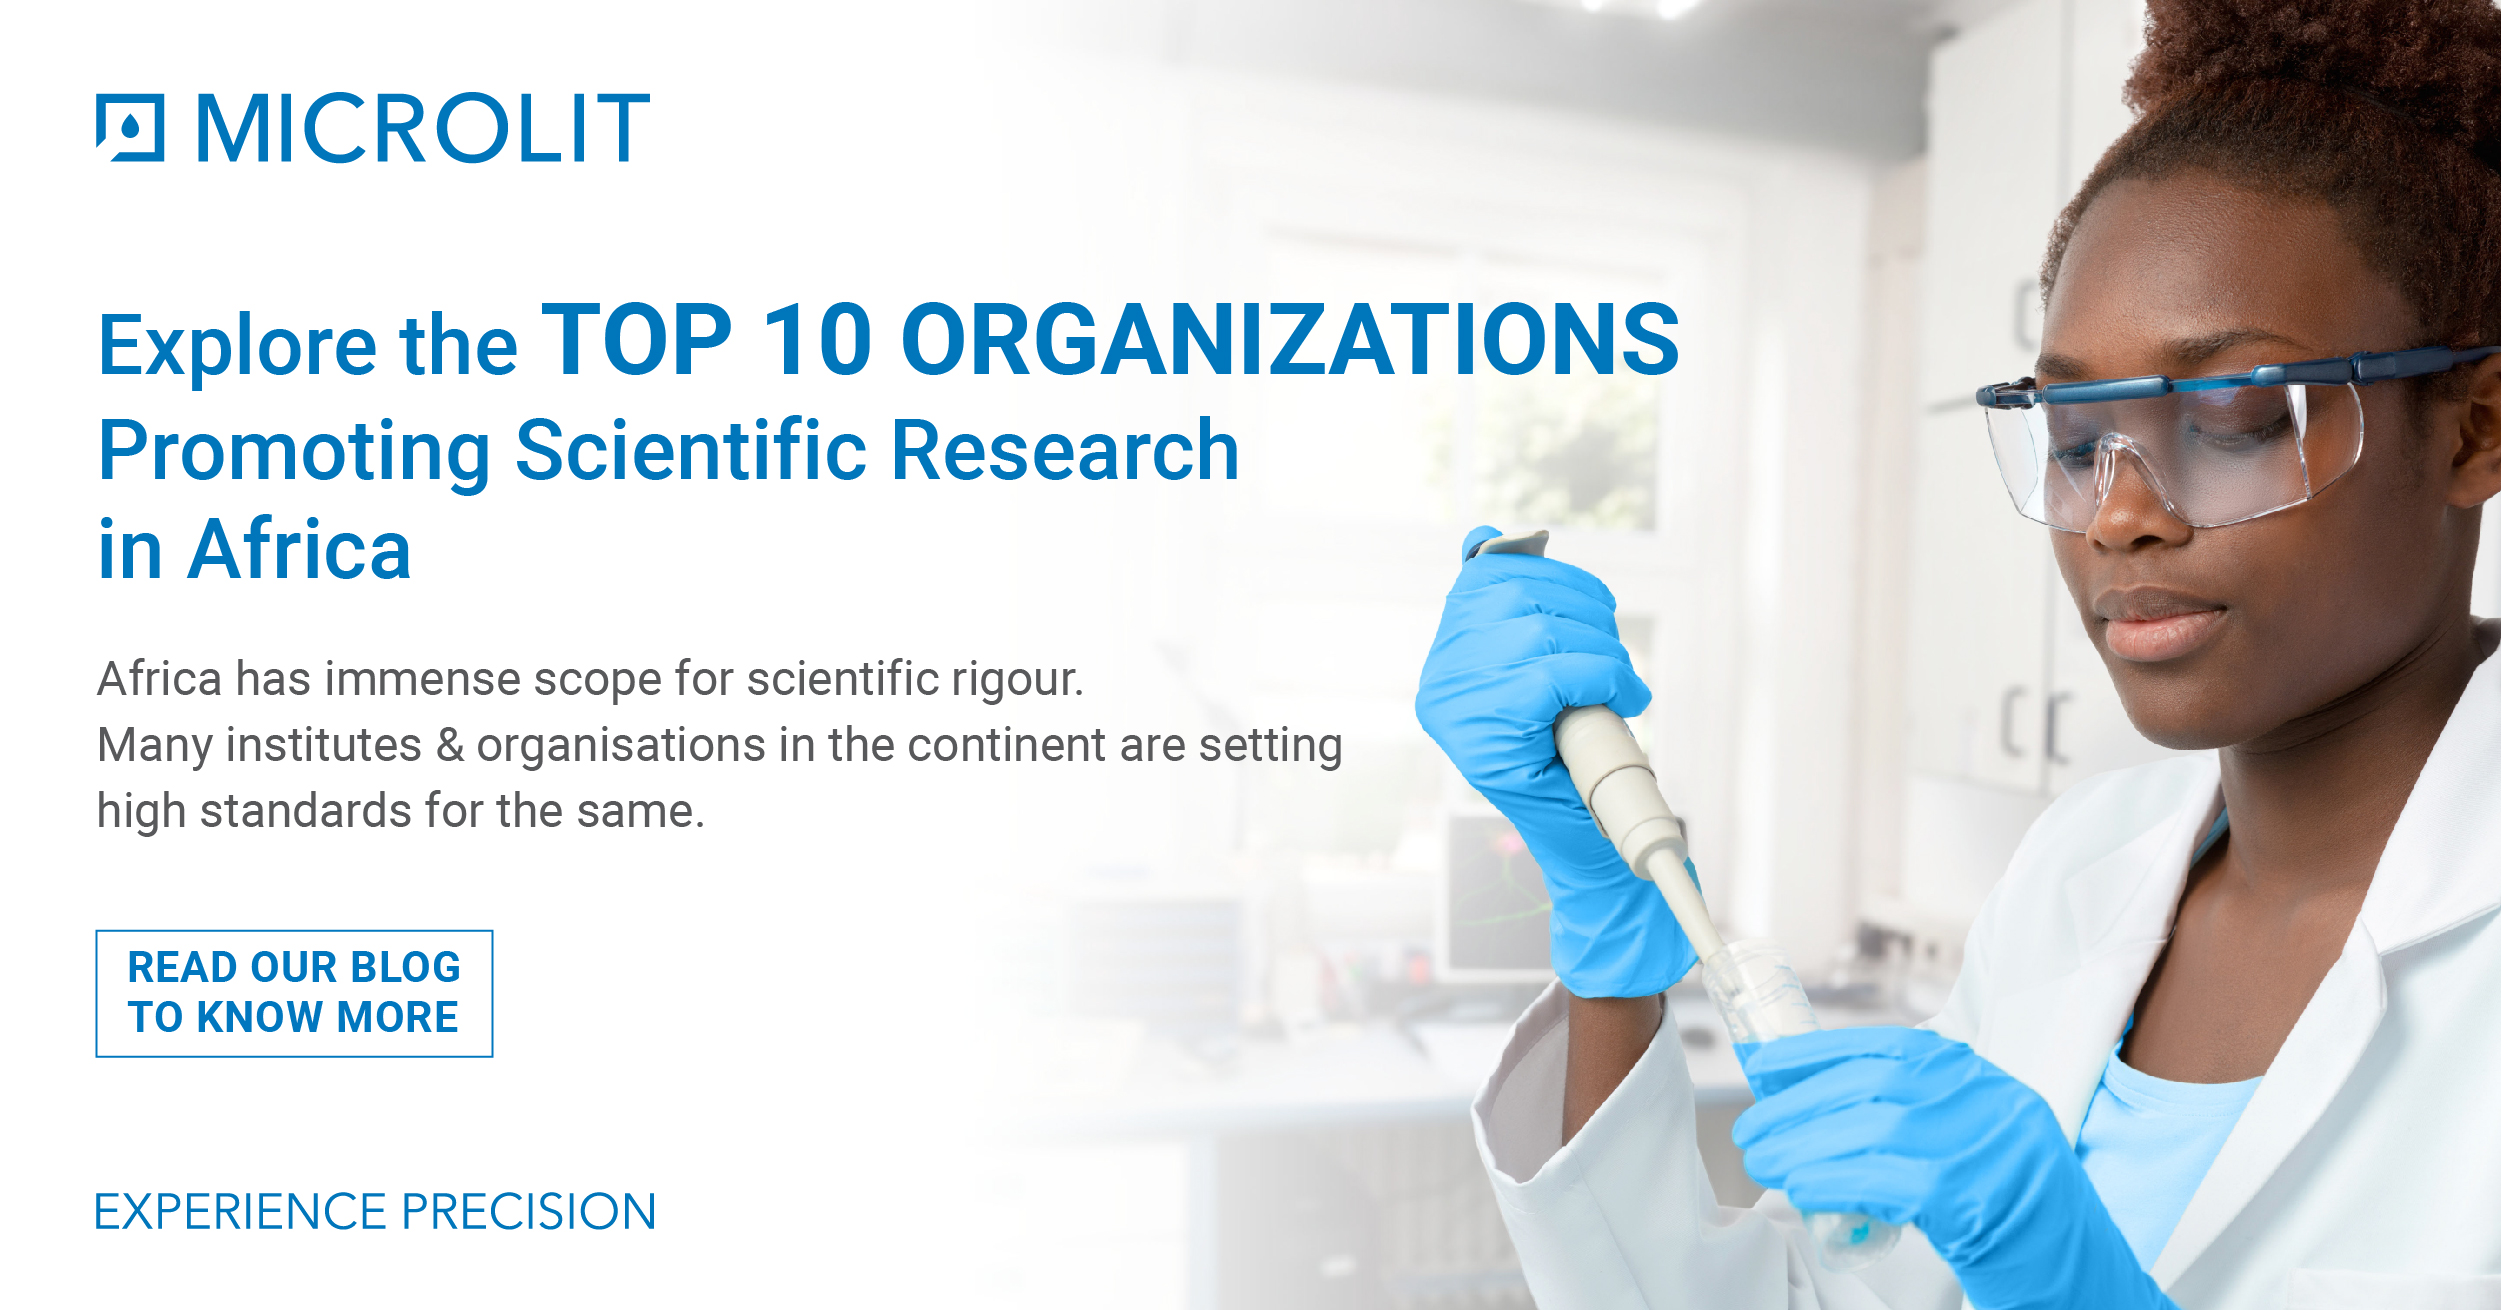 Top 10 Organizations Promoting Scientific Research in Africa